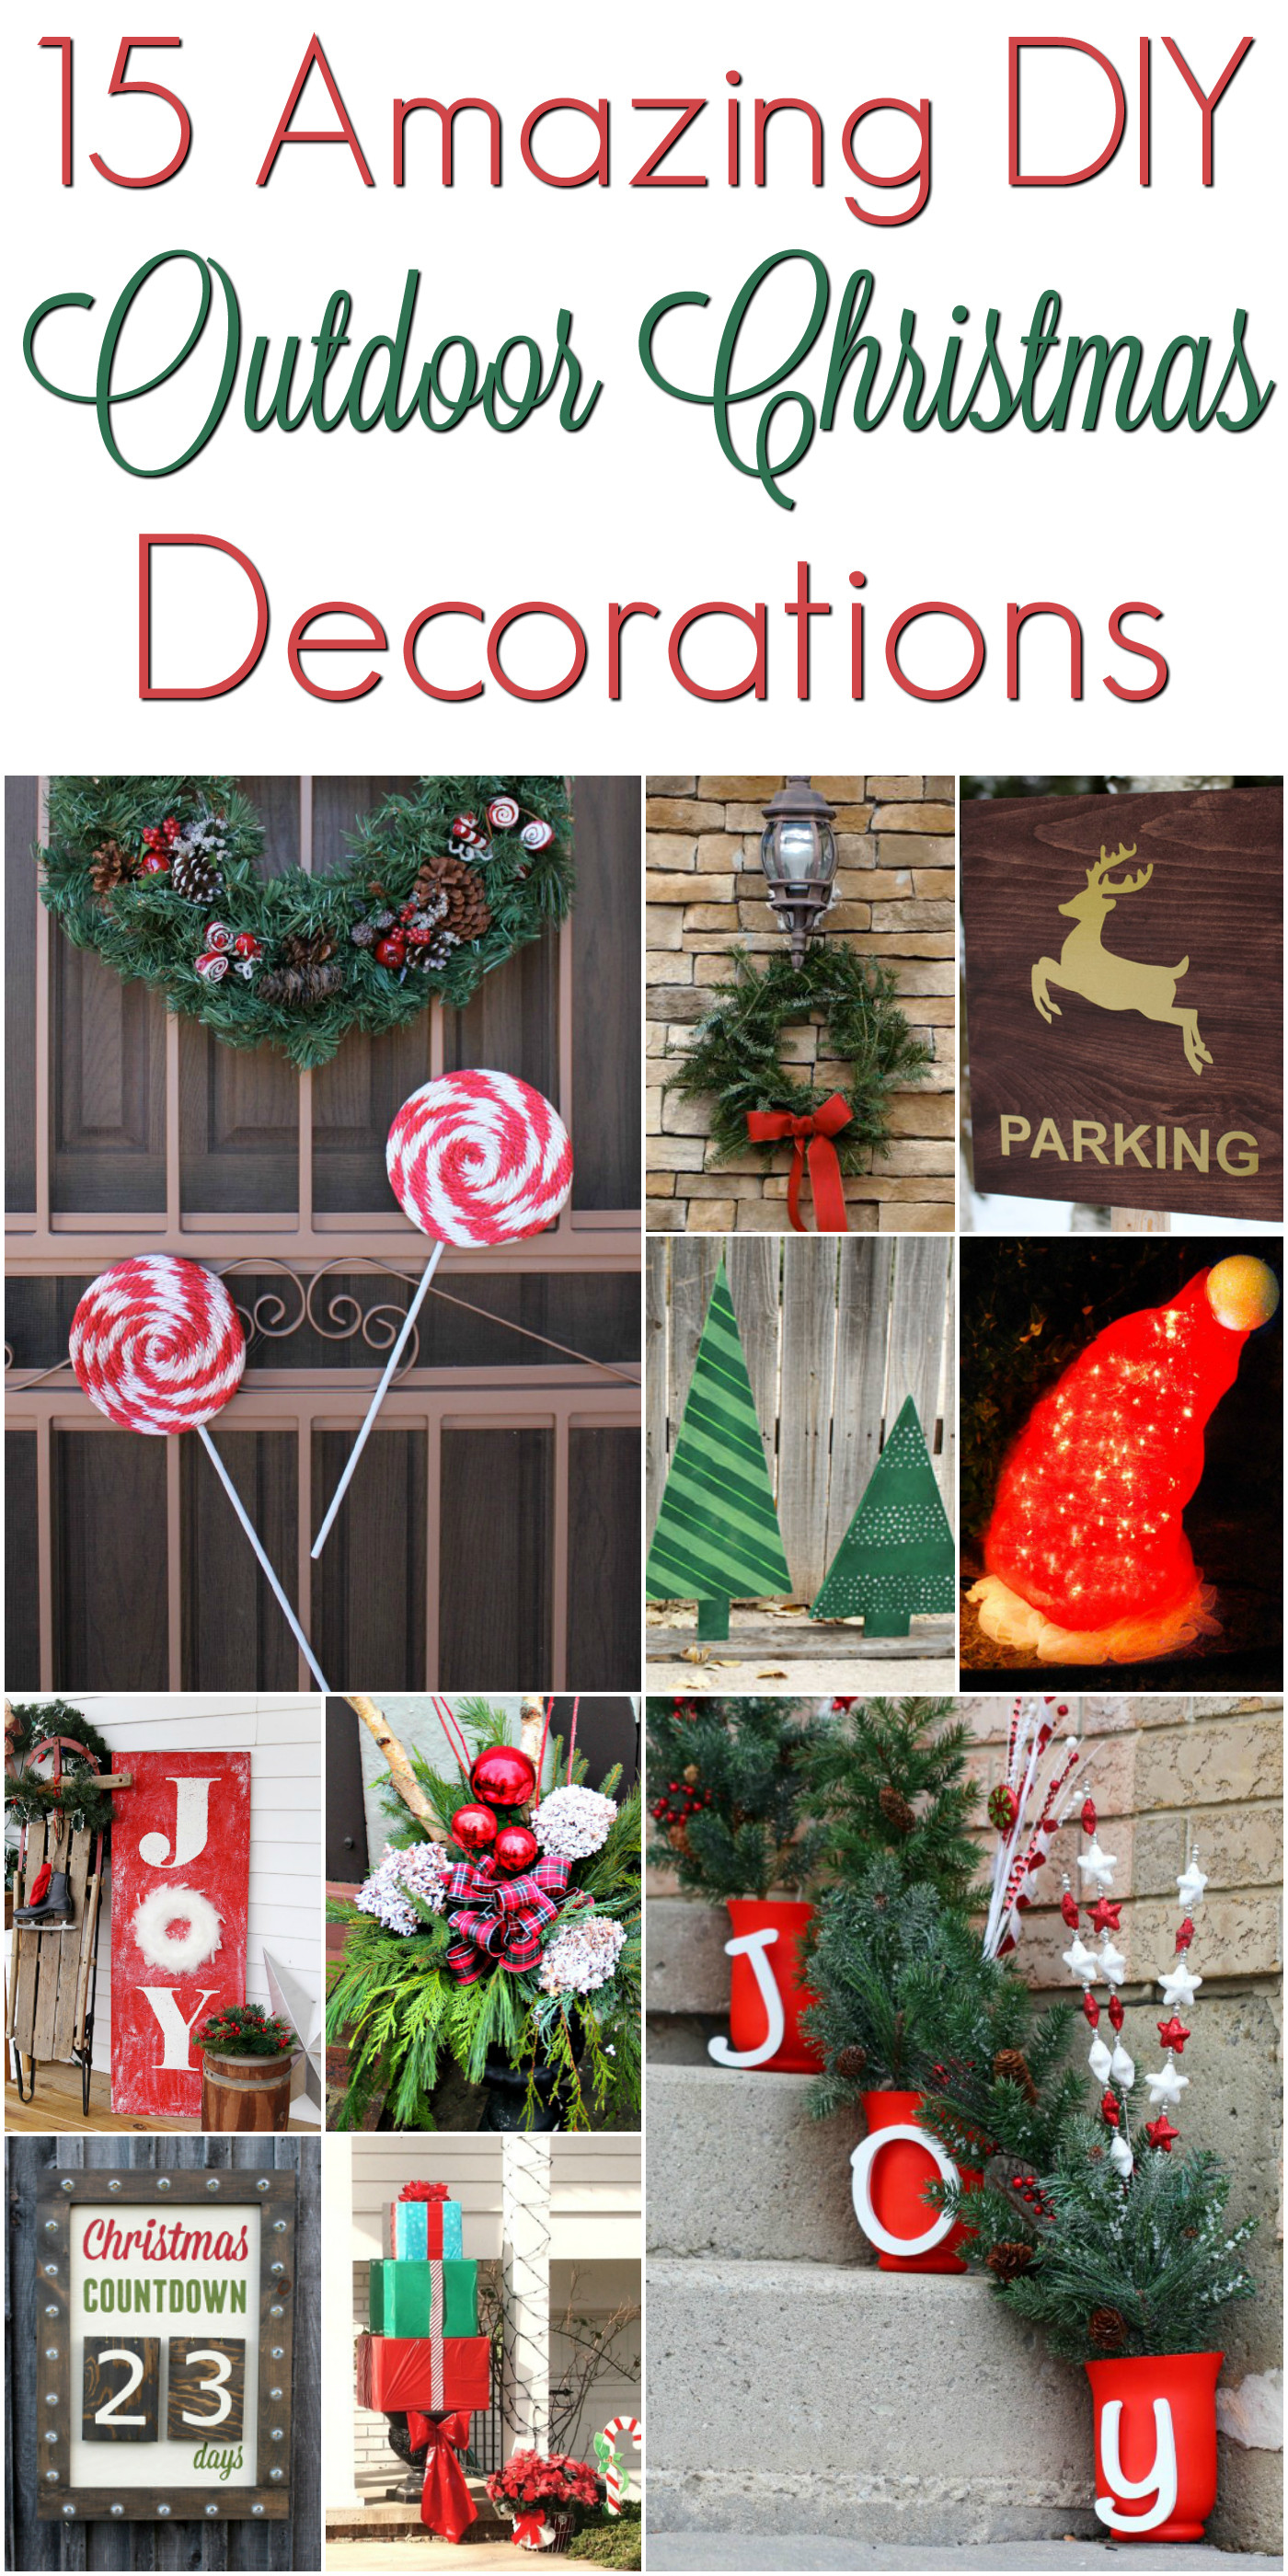 Best ideas about DIY Christmas Decorations Outdoors . Save or Pin DIY Christmas Outdoor Decorations ChristmasDecorations Now.